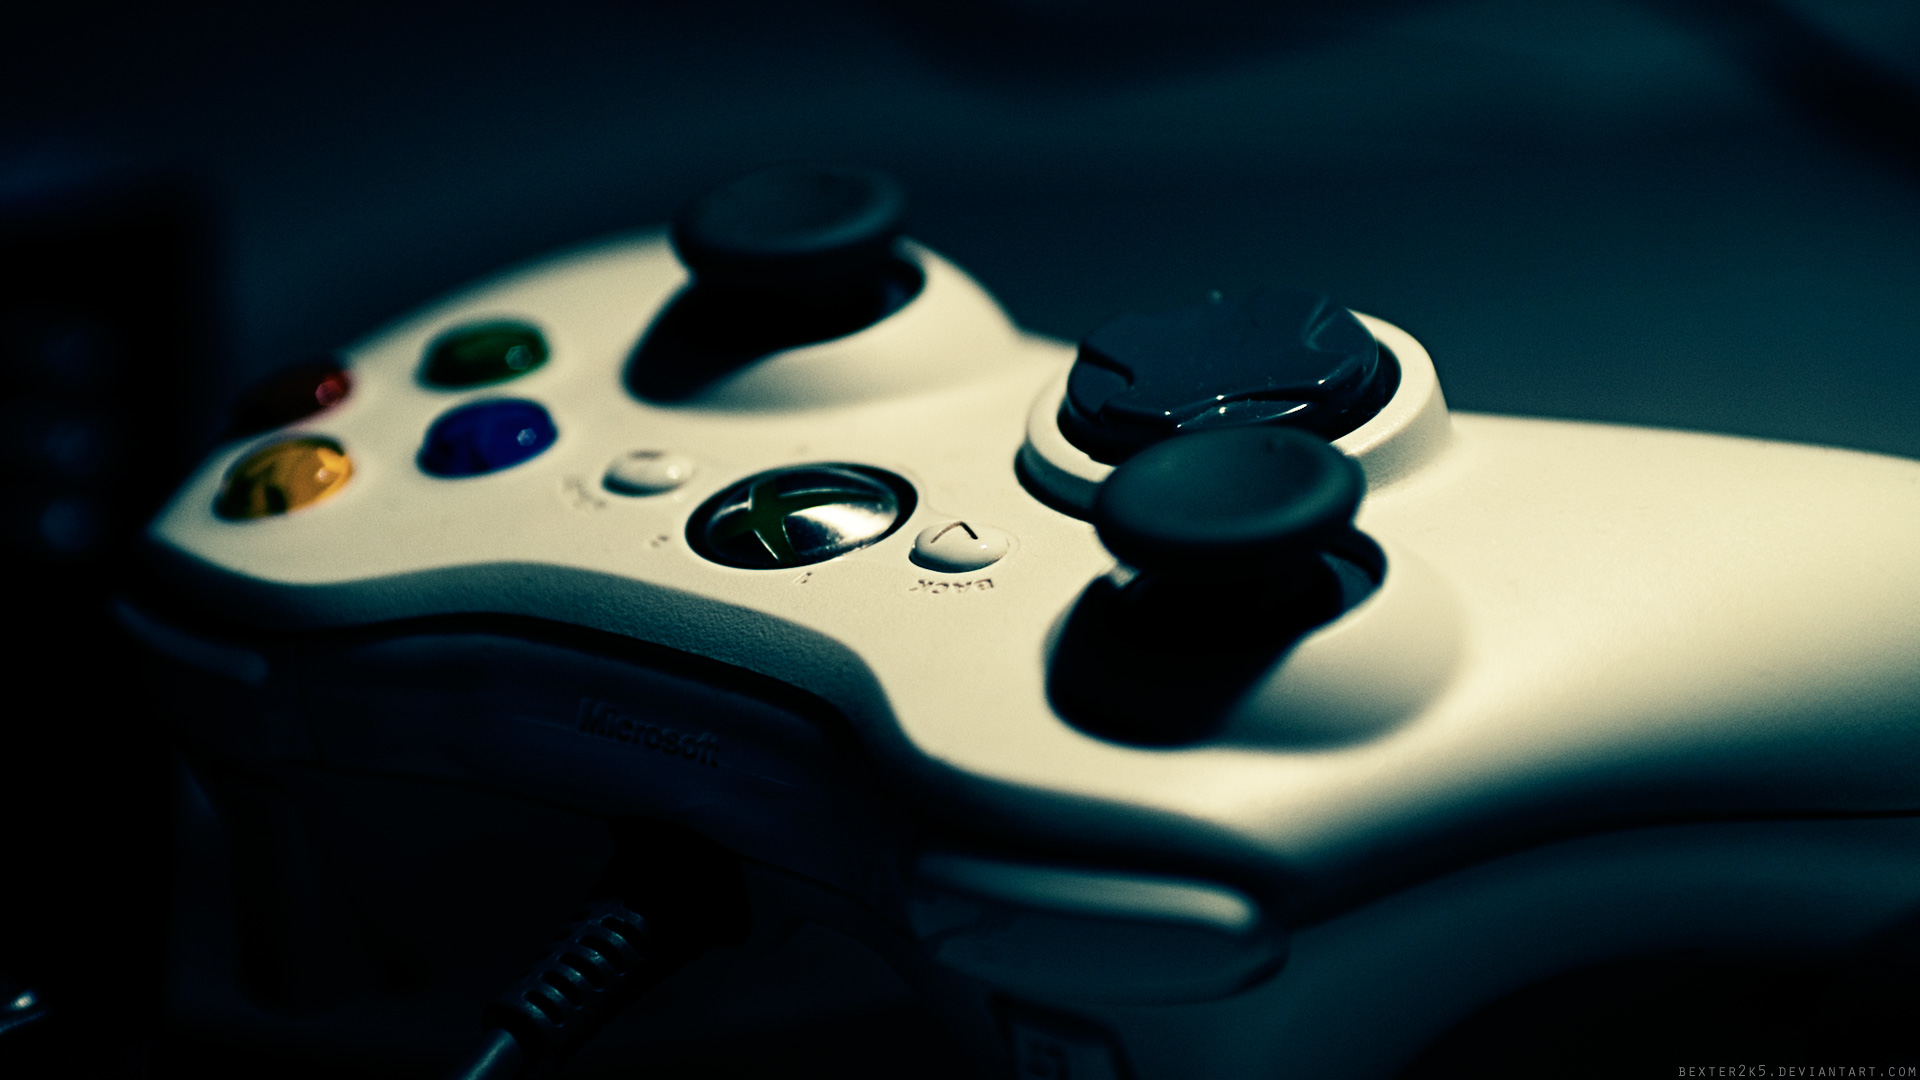 Gamer Thug Controller Hd Wallpapers: Nintendo « Awesome Wallpapers